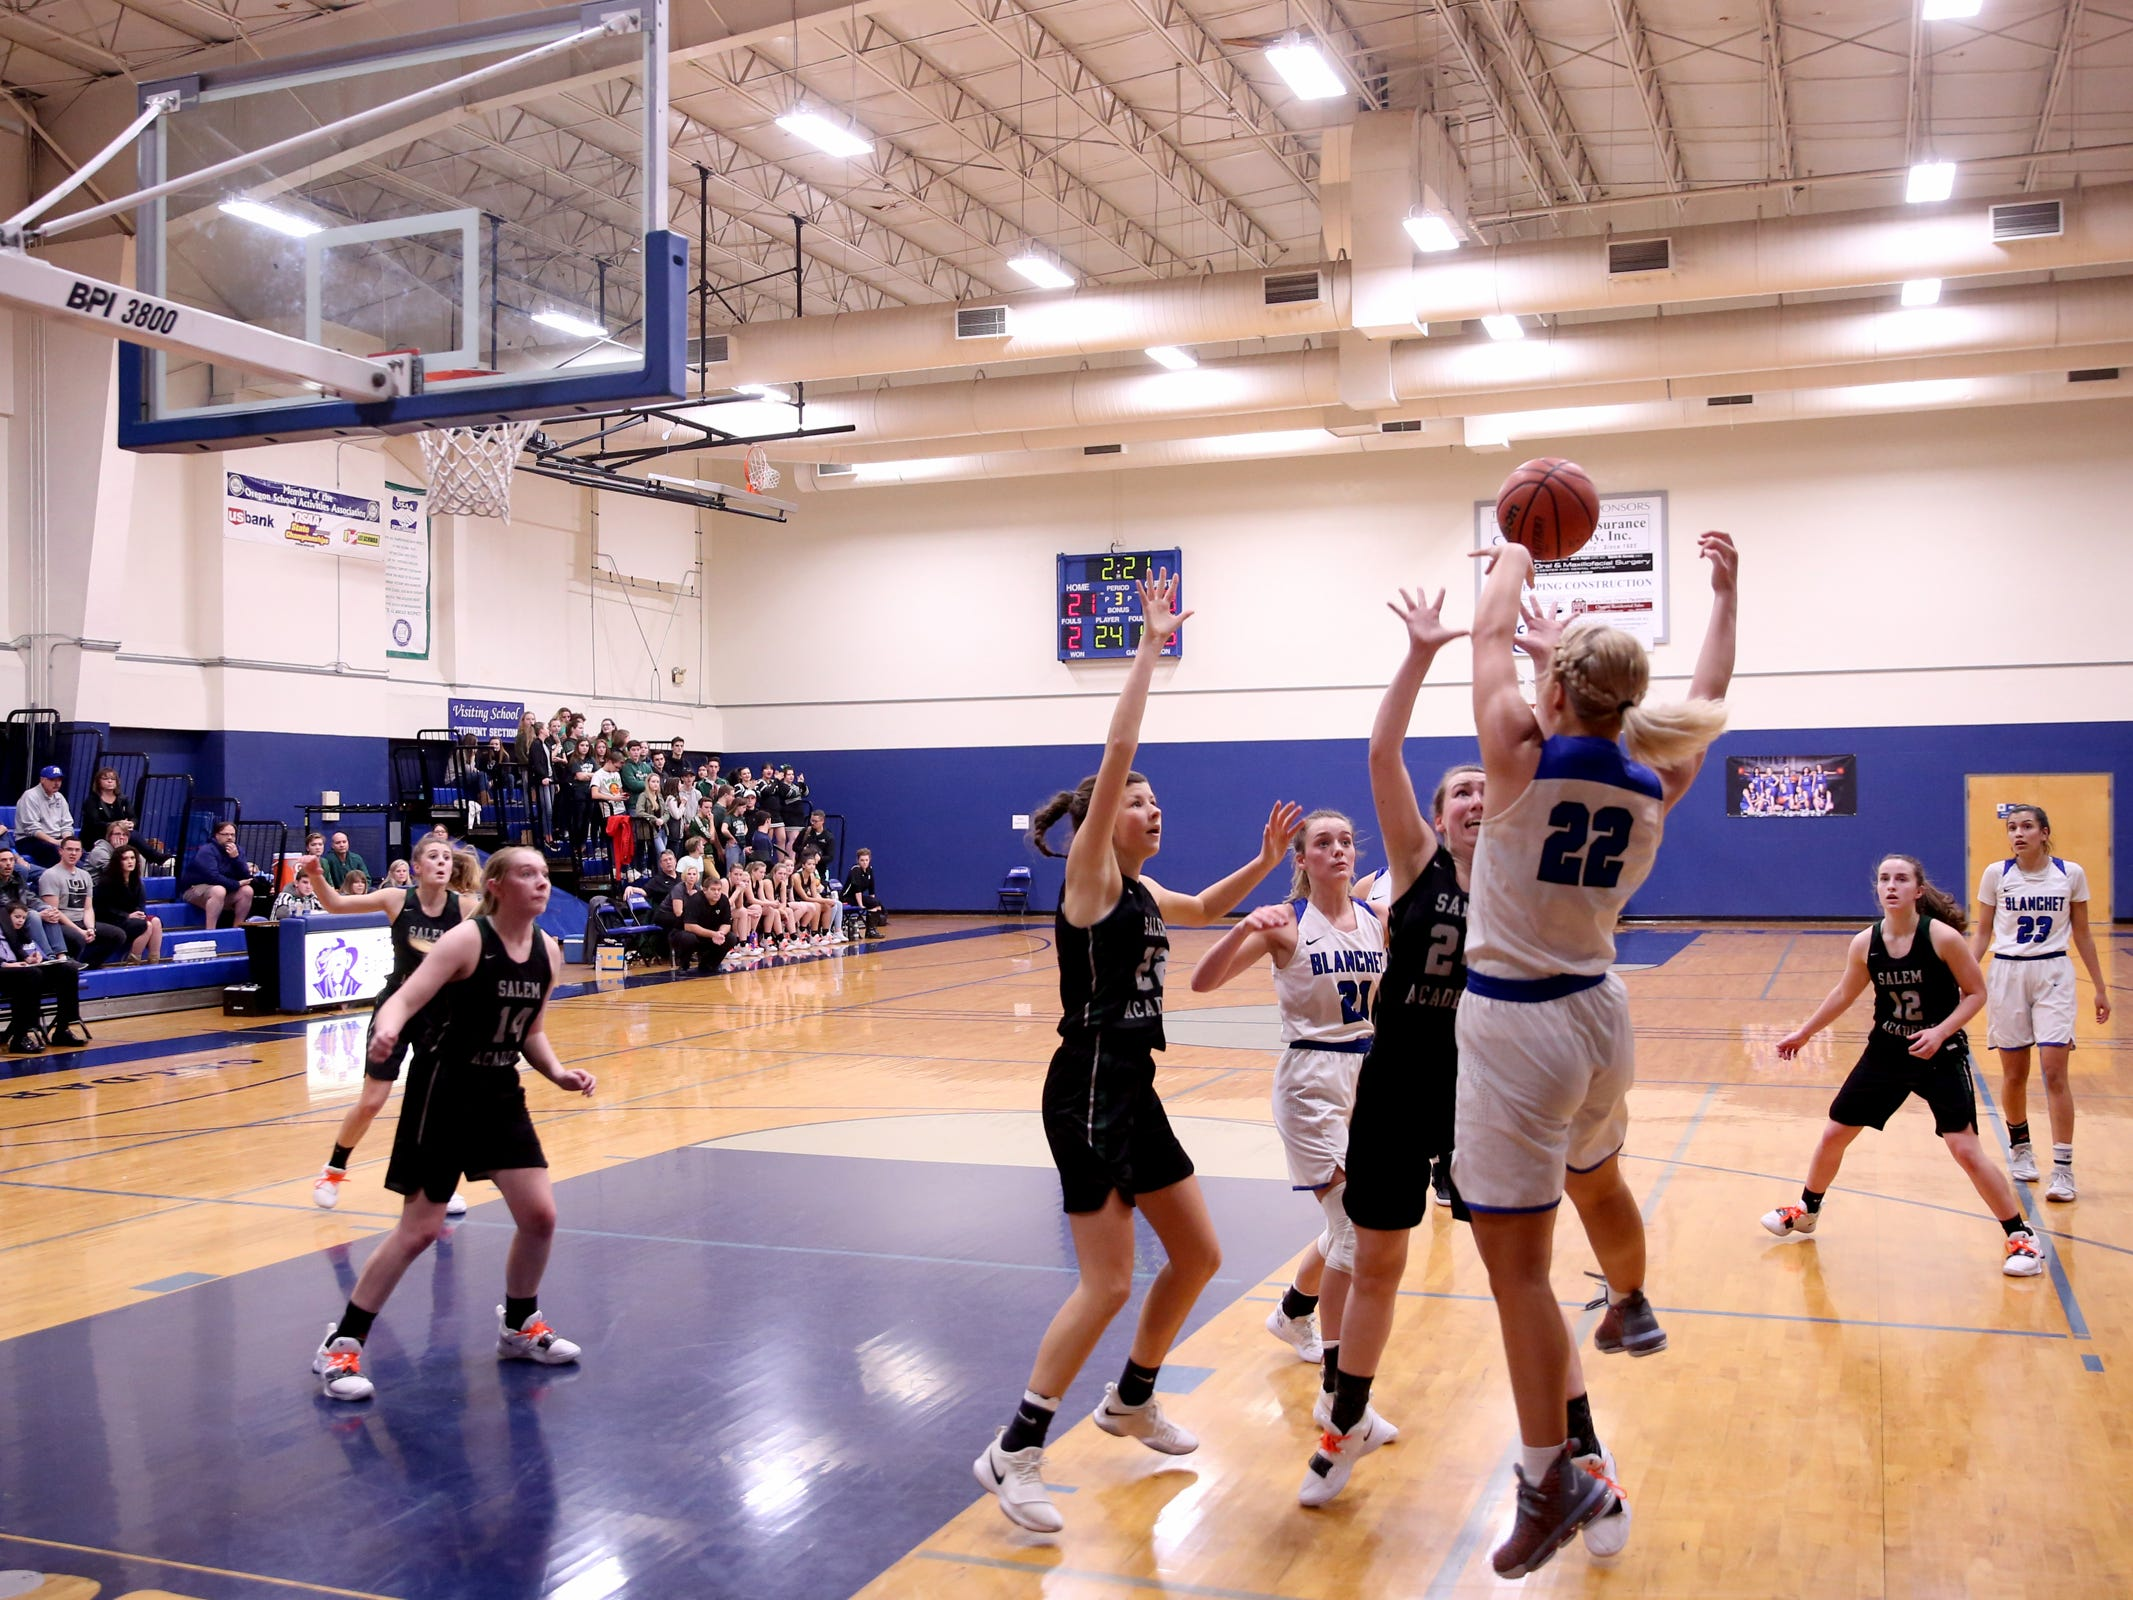 The second half of the Salem Academy vs. Blanchet Catholic girls basketball game at Blanchet Catholic School in Salem on Friday, Jan. 18, 2019. Blanchet Catholic won the gam 48-40.